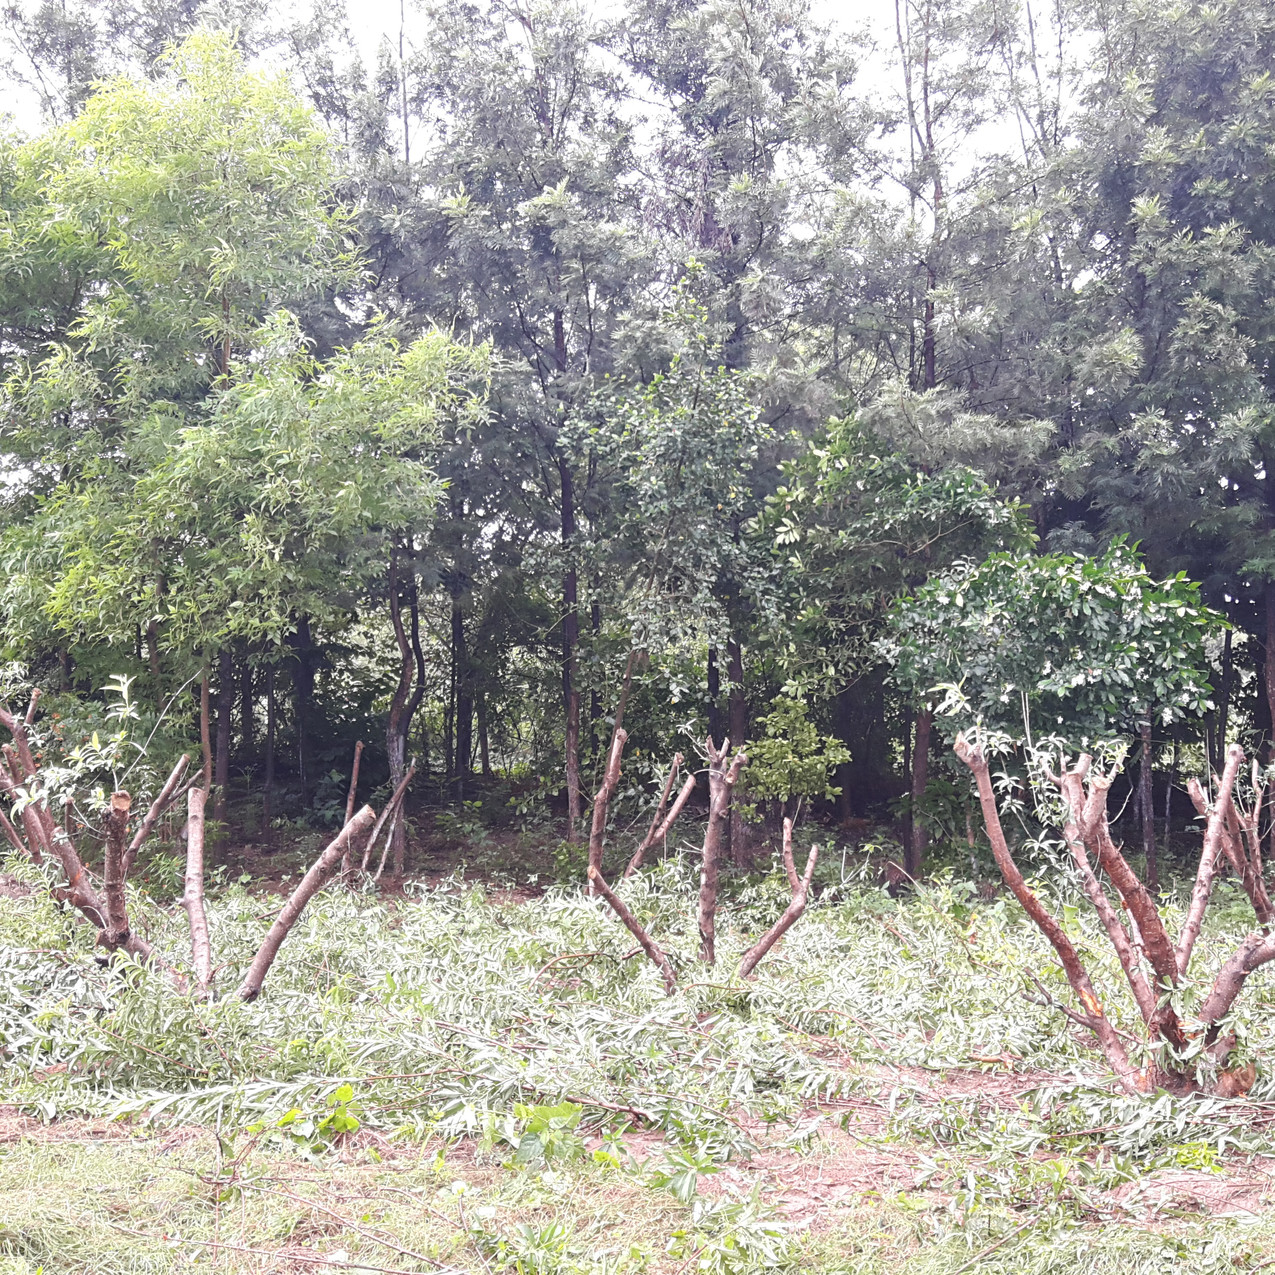 Drastically cut back overgrown peach trees to rejuvenate them for fruit production